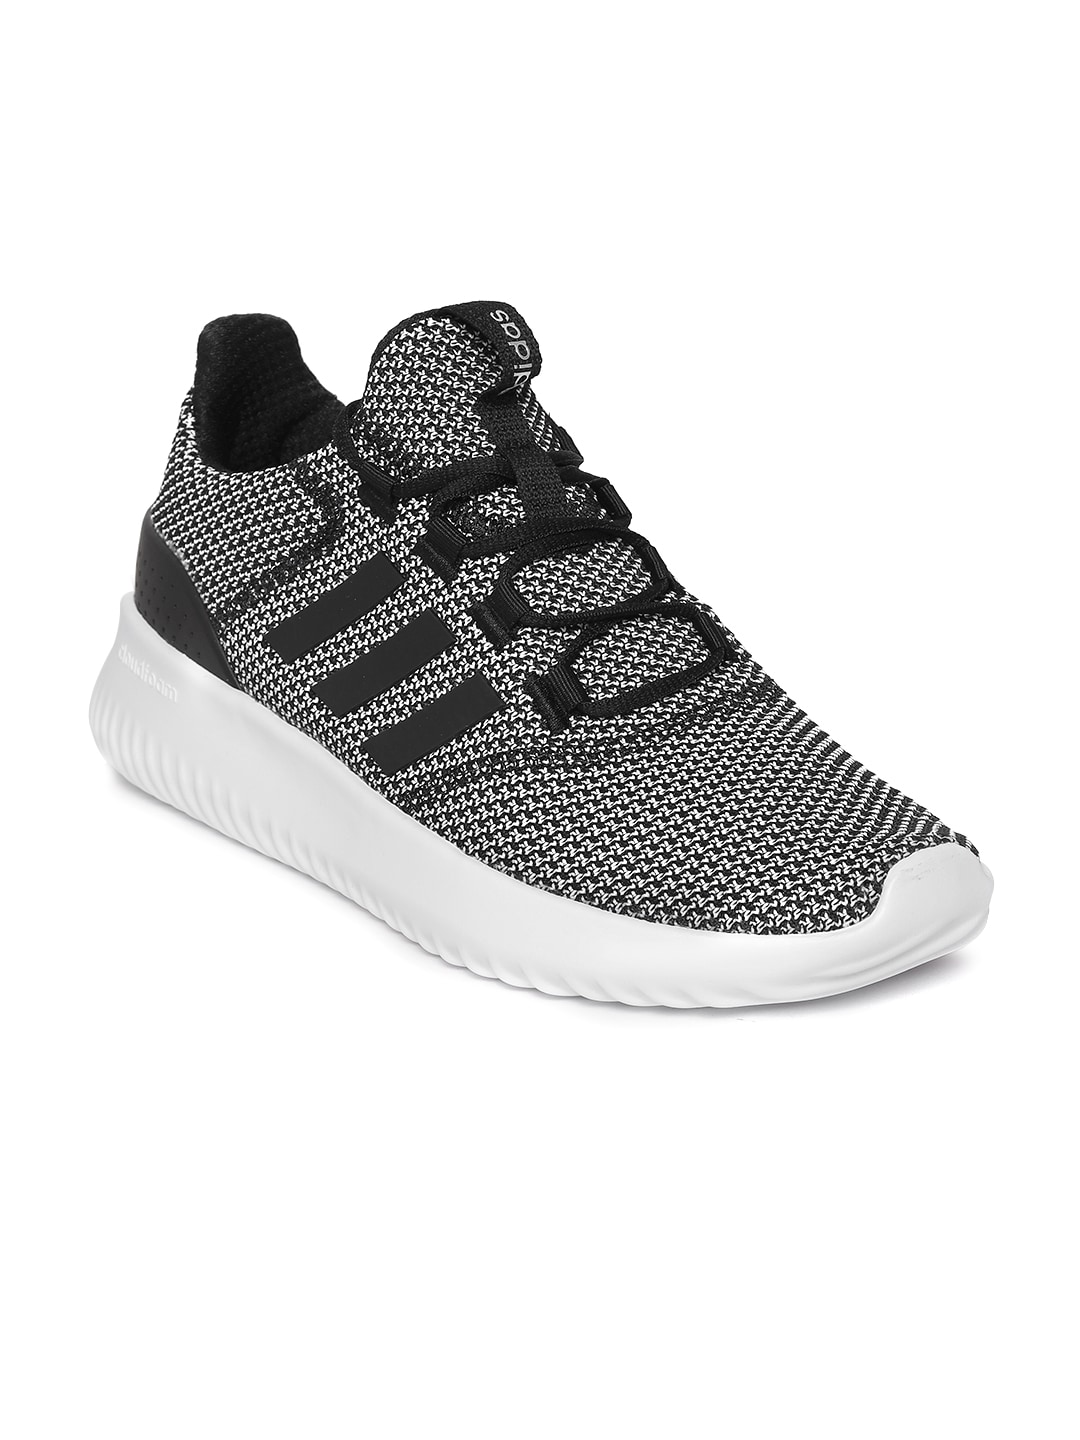 2f581fedf18 Adidas Shoes - Buy Adidas Shoes for Men   Women Online - Myntra